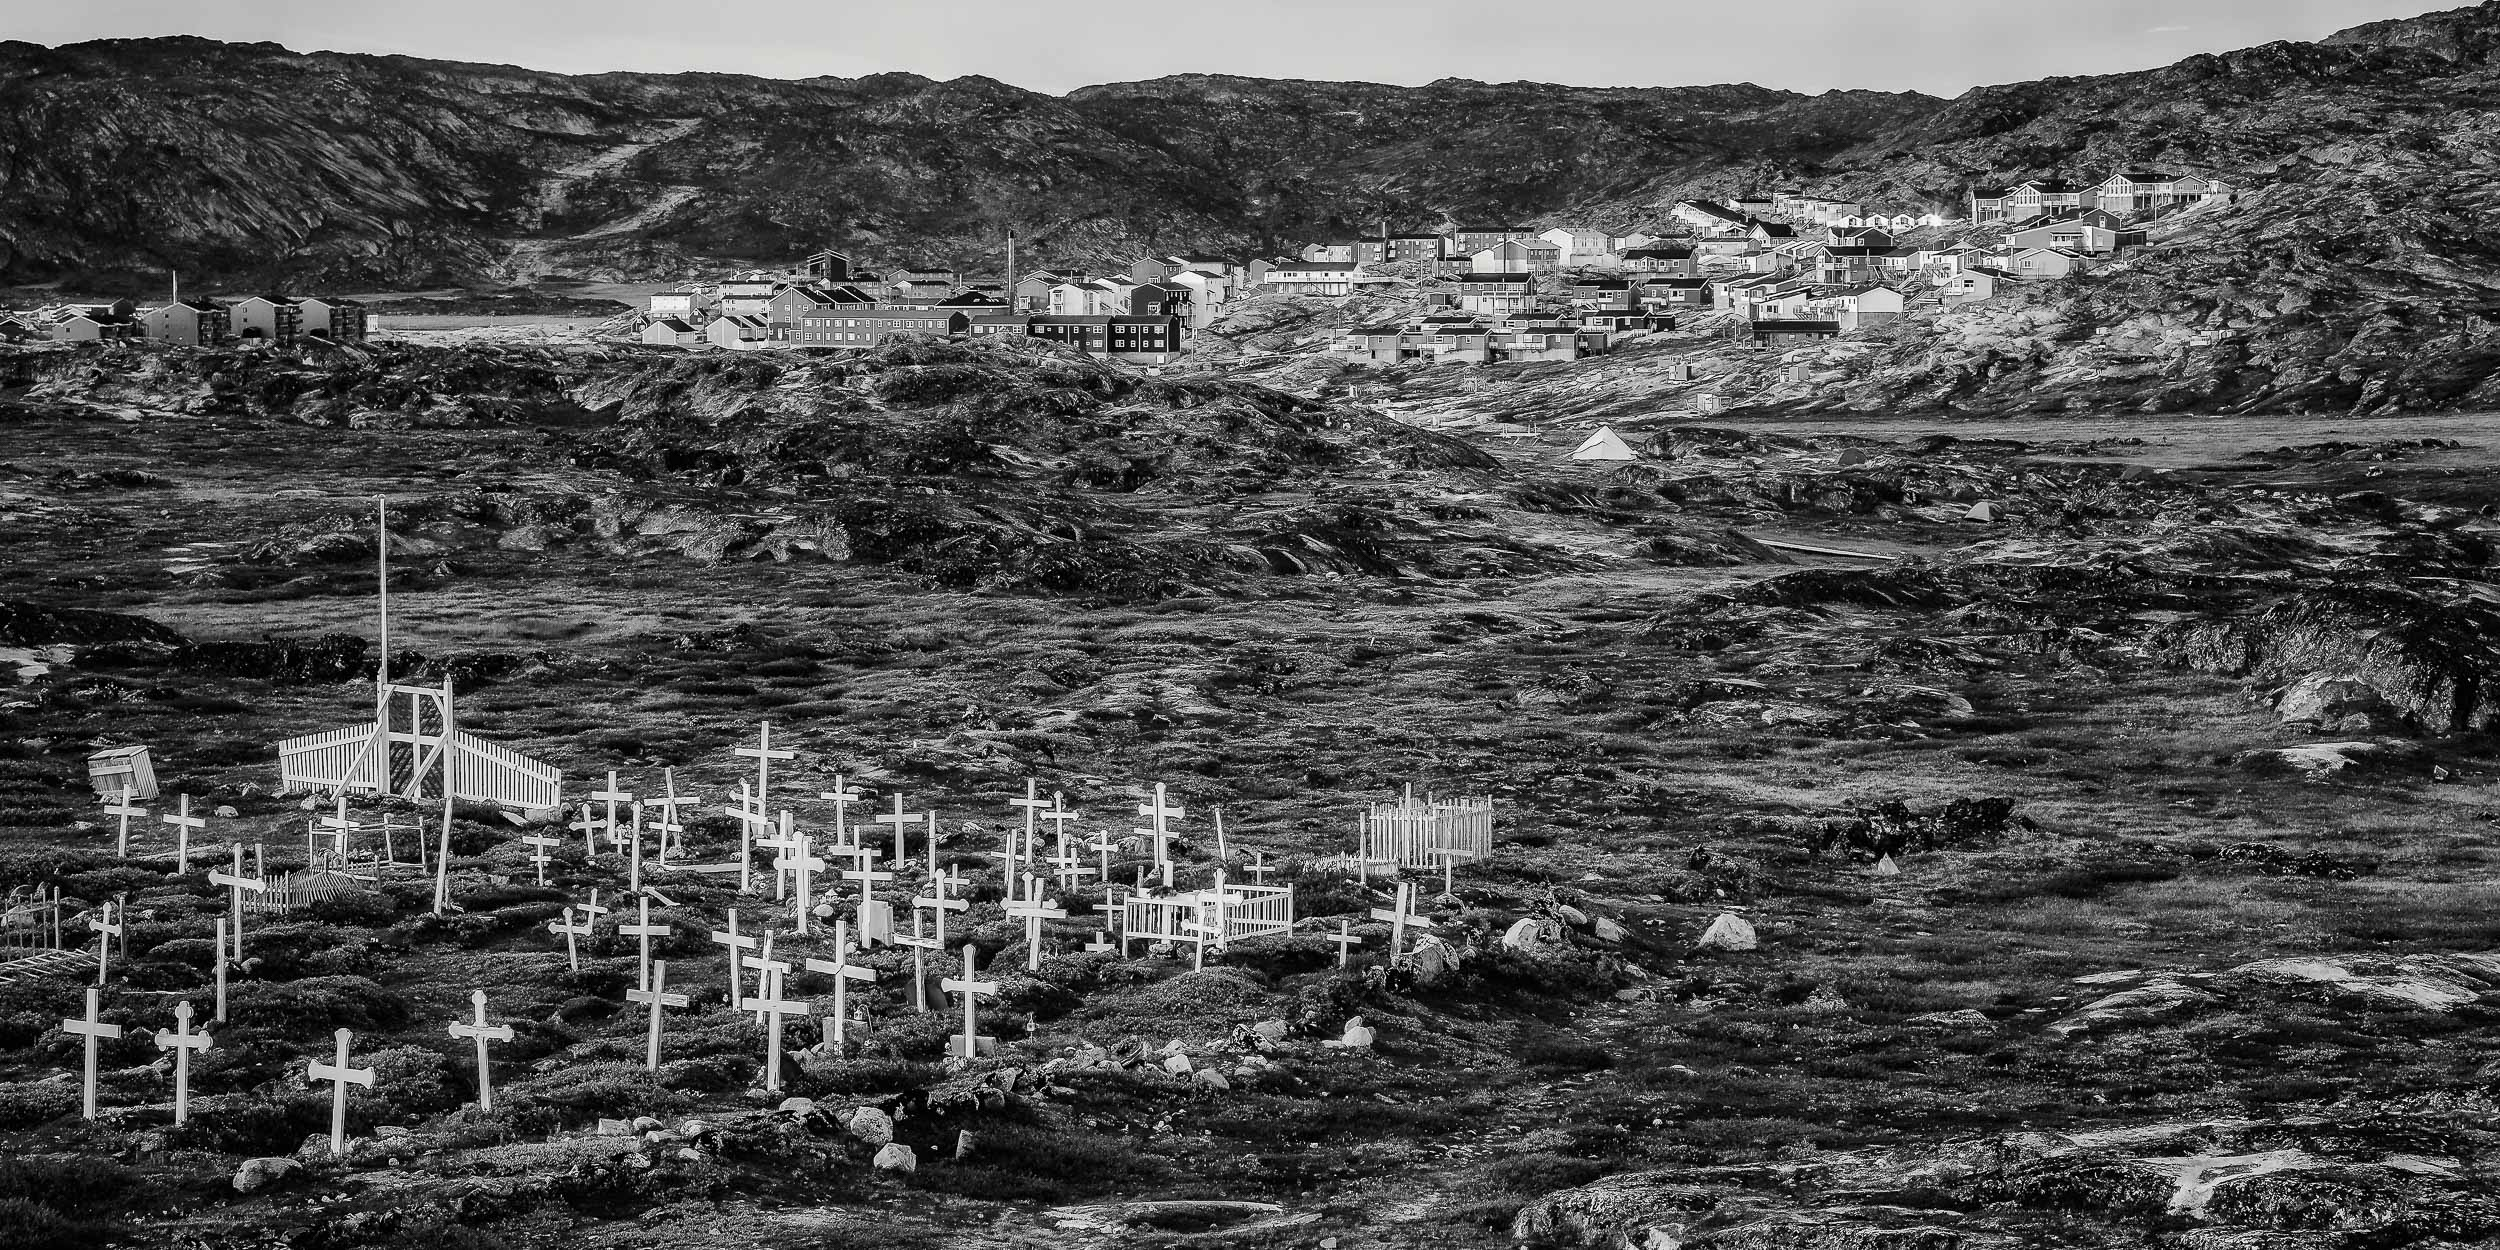 A    late evening    view of the    cemetery and town outskirts    at    Ilulissat, Greenland